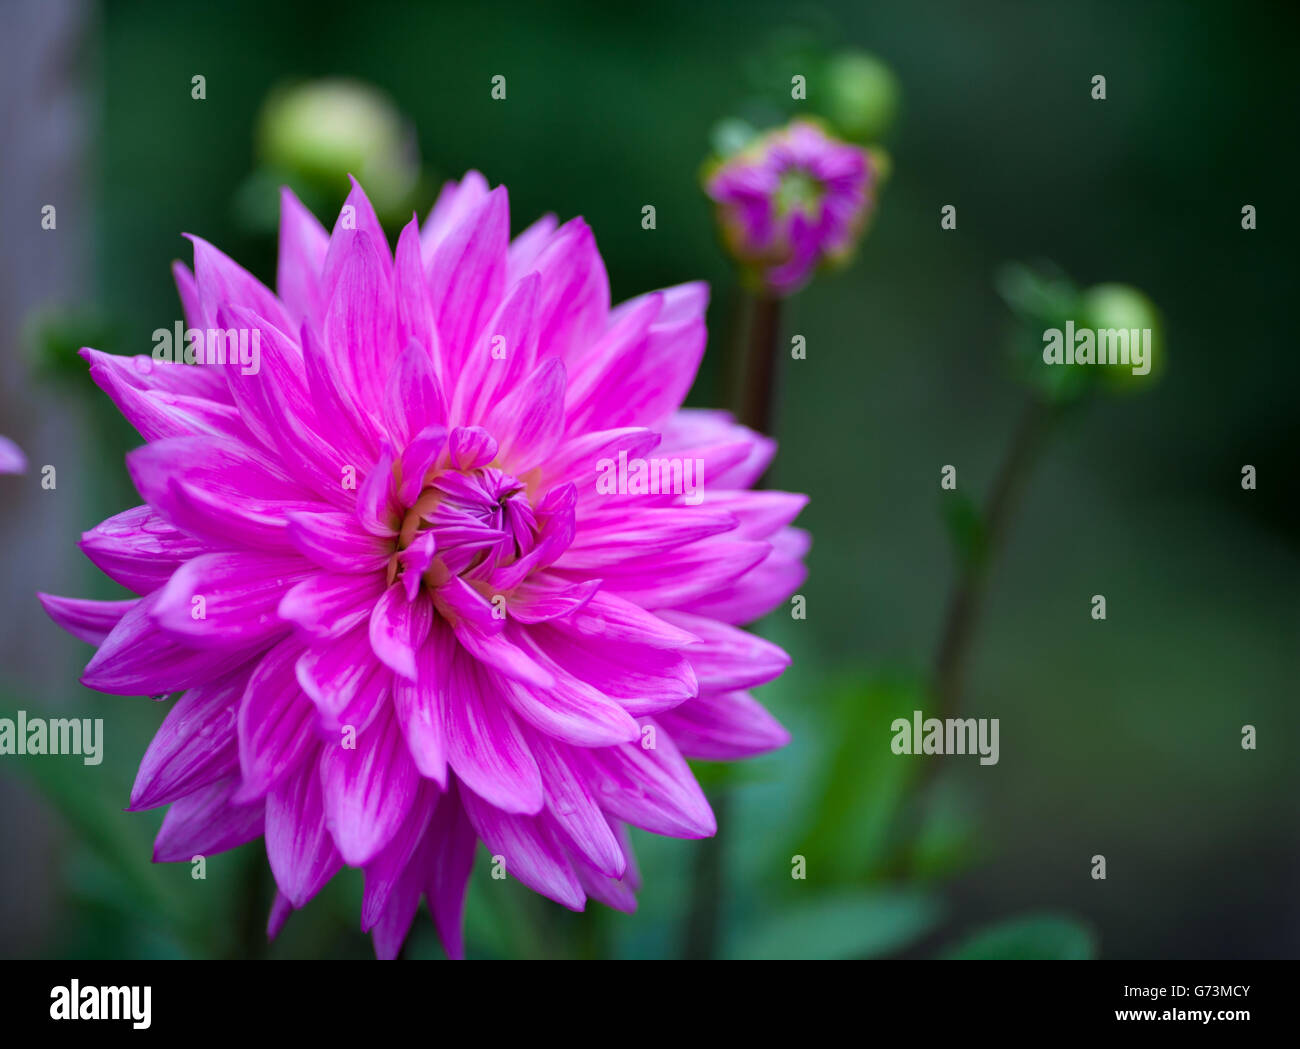 Pink Dahlia flower in full bloom closeup - Stock Image